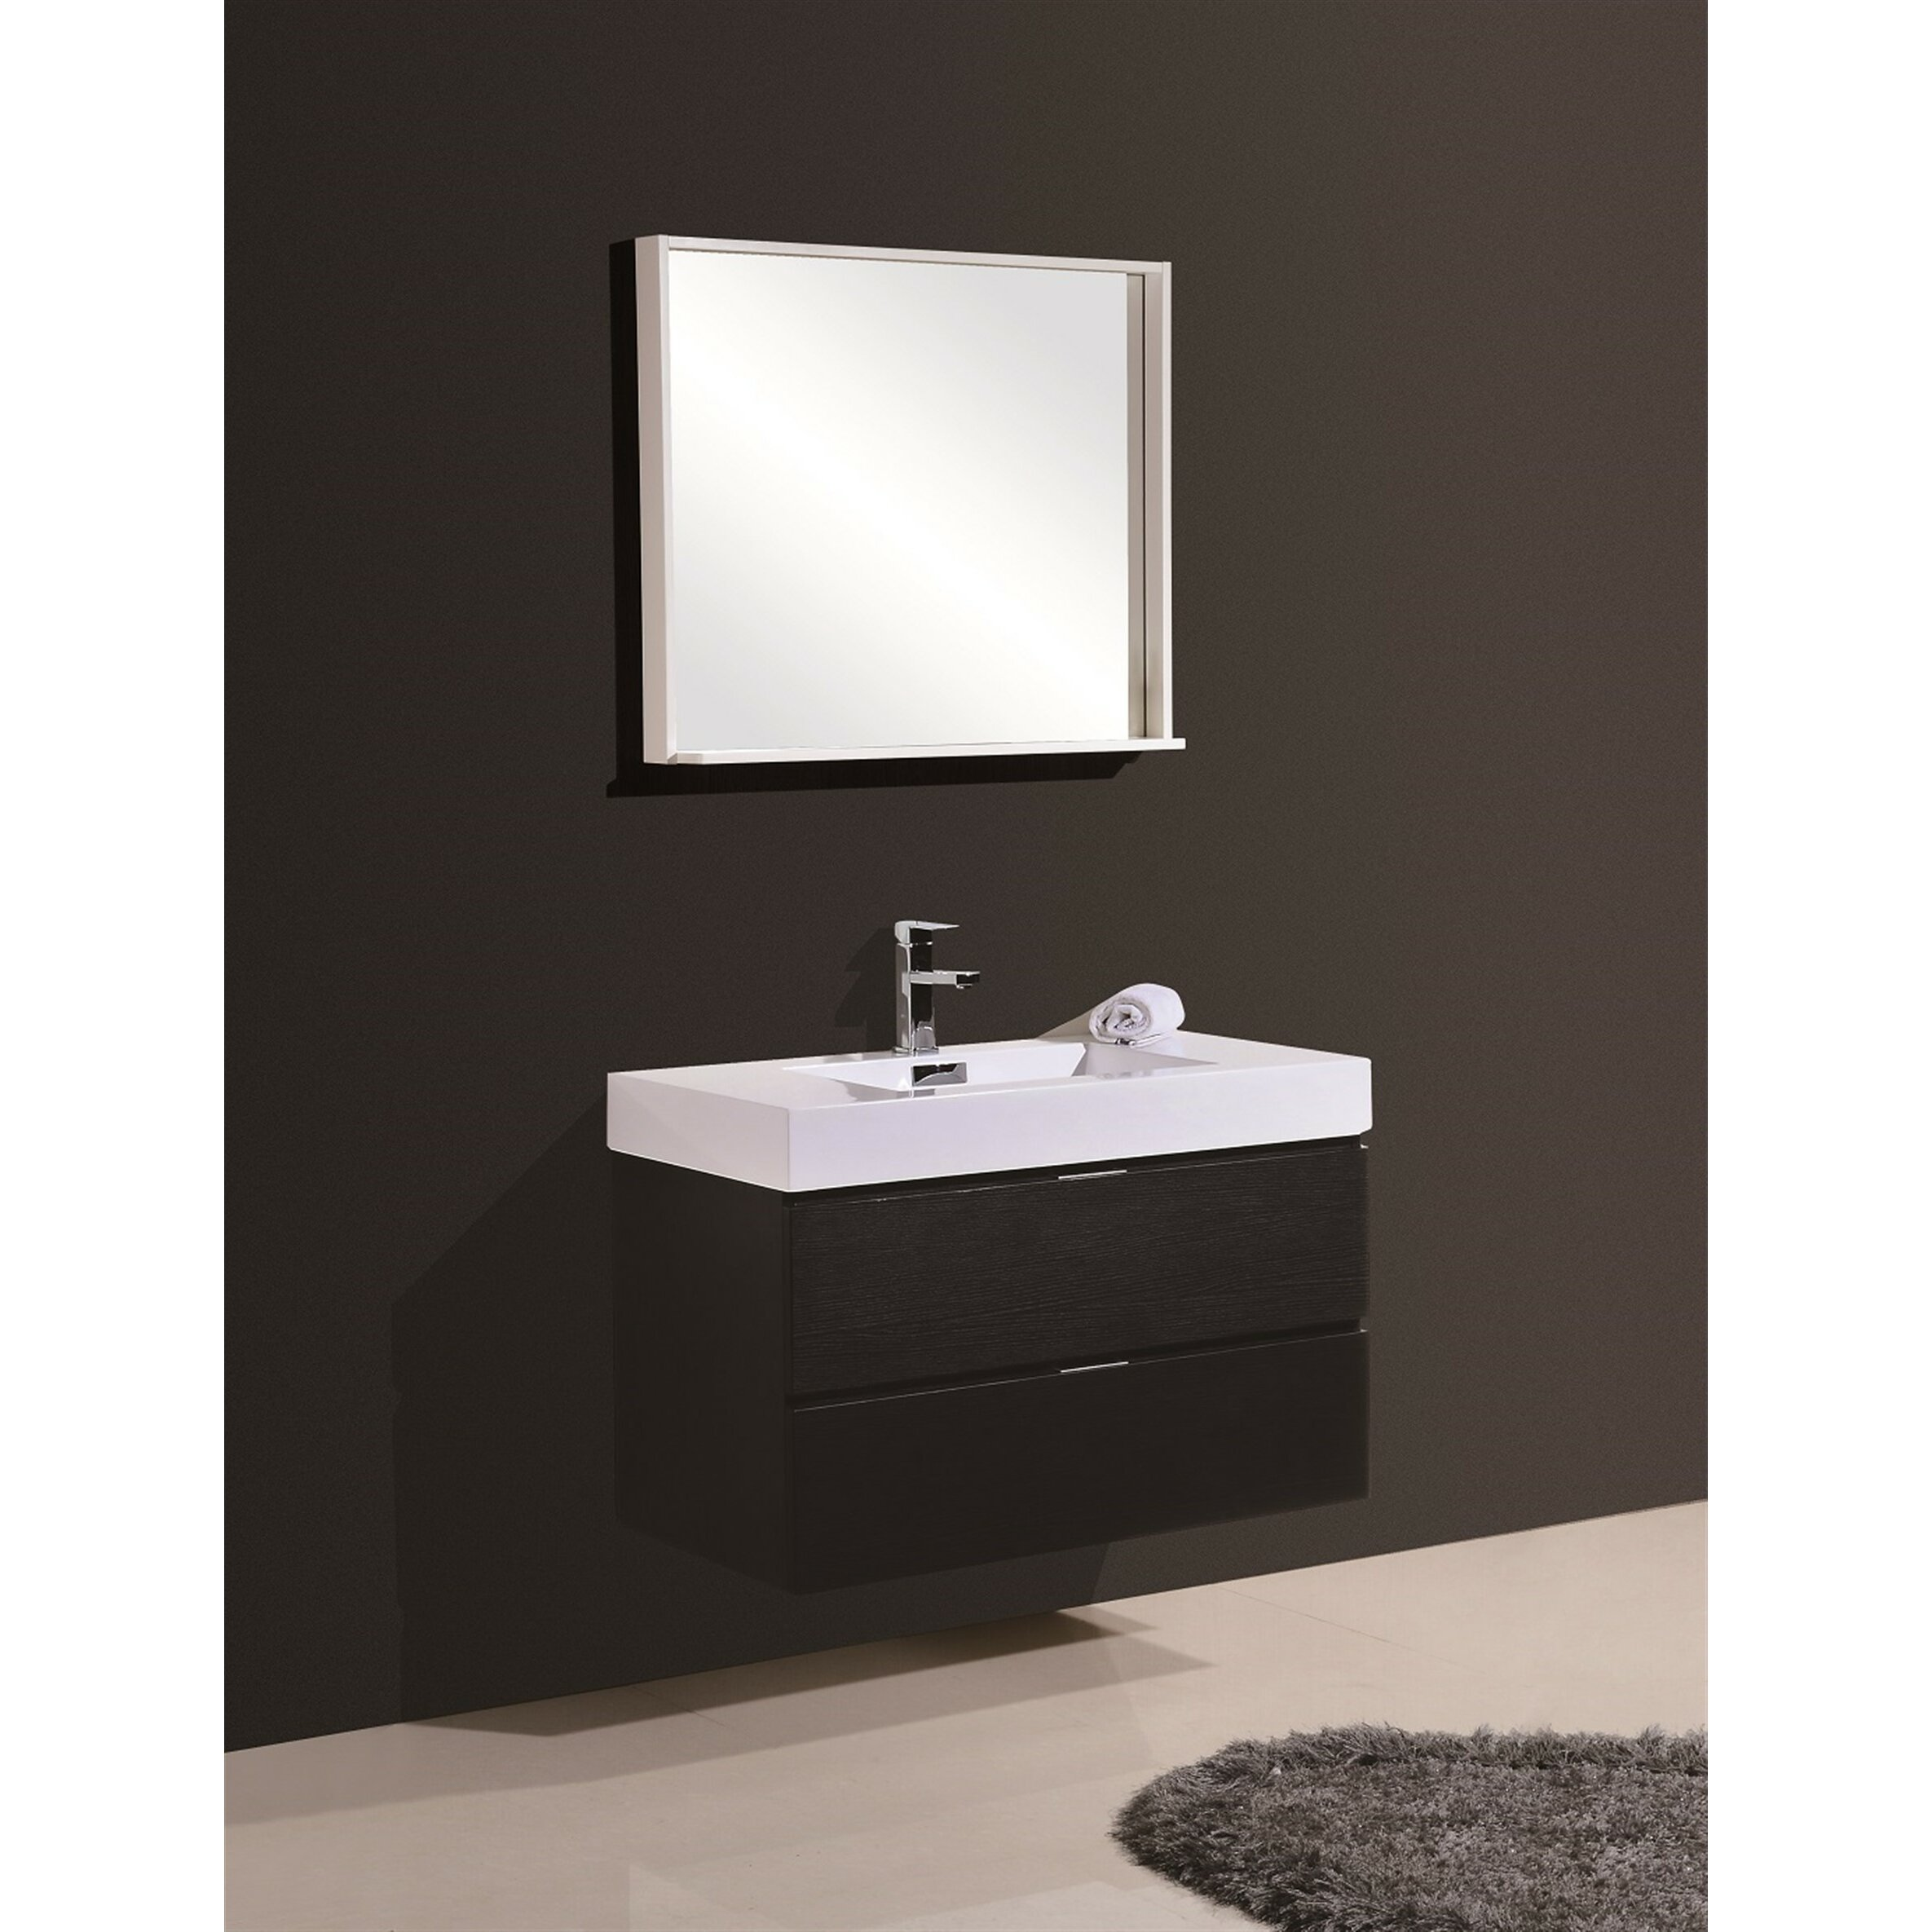 Modern bathroom cabinet - Wade Logan Reg Tenafly 36 Quot Single Wall Mount Modern Bathroom Vanity Set